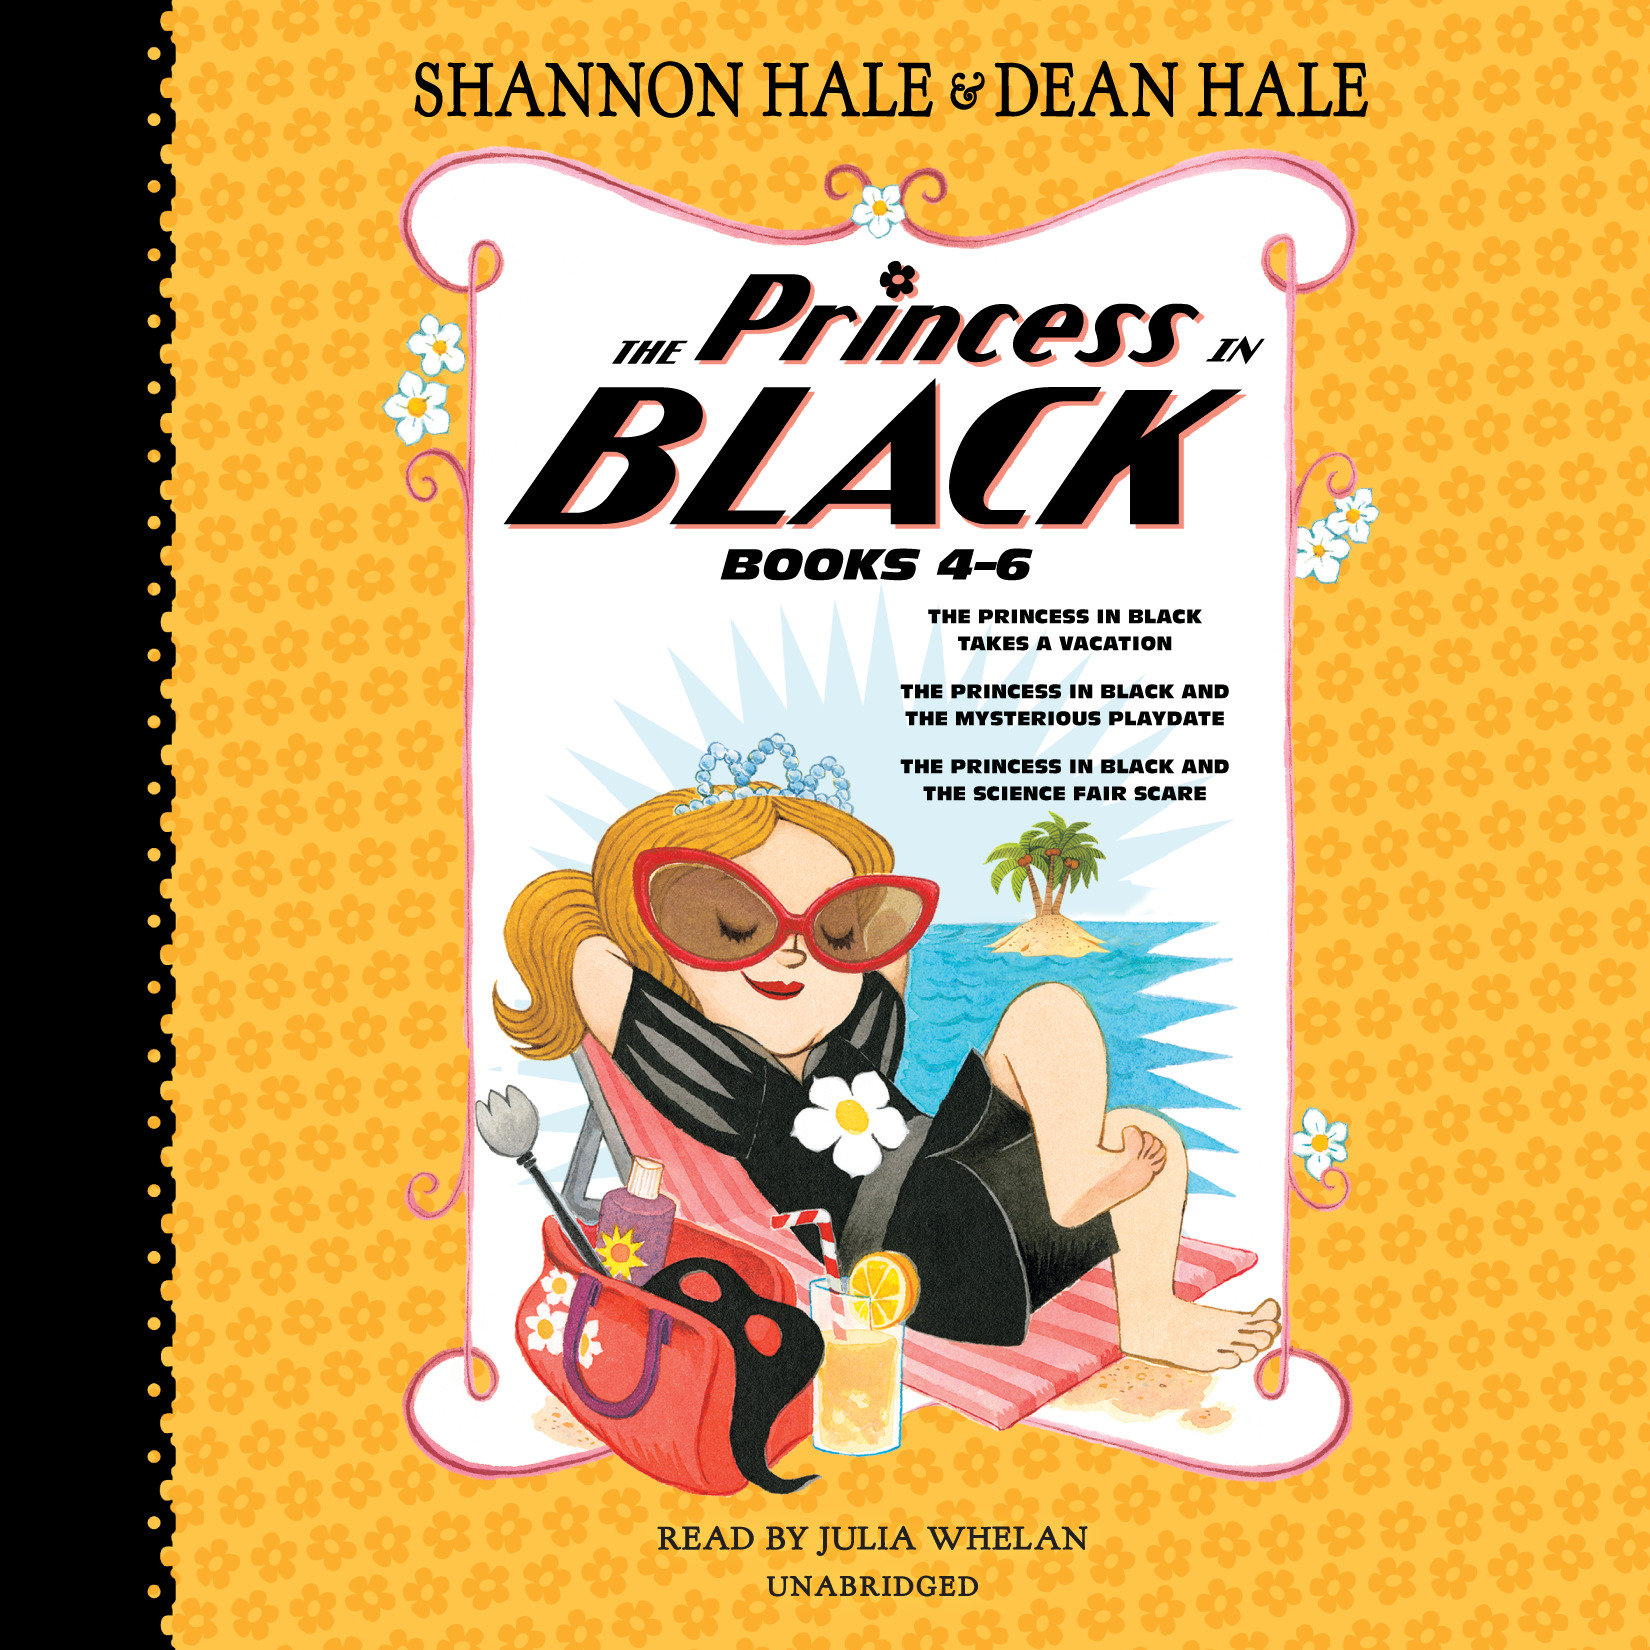 The Princess in Black, Books 4-6 : The Princess in Black Takes a Vacation; The Princess in Black and the Mysterious Playdate; The Princess in Black and the Science Fair Scare